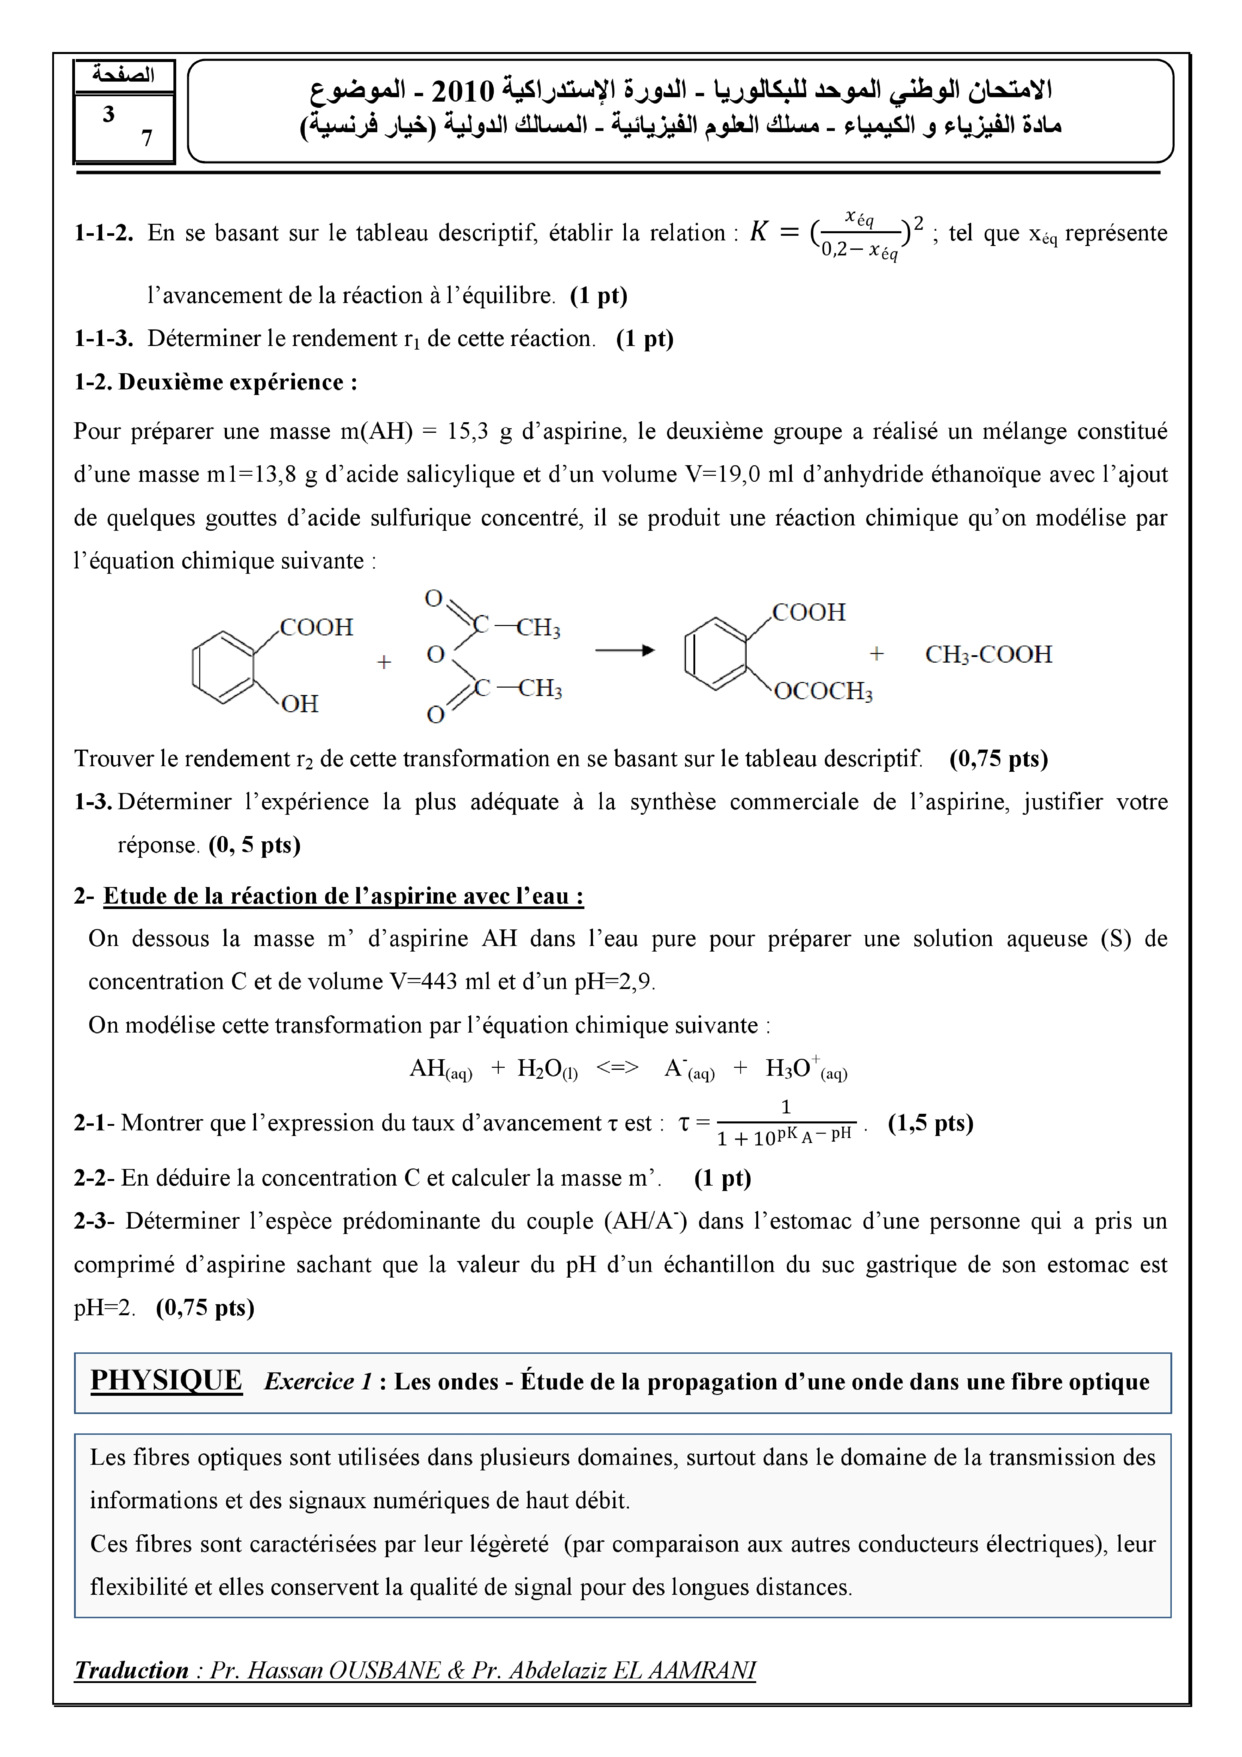 Examen National Physique-Chimie SPC 2010 Rattrapage - Sujet3.jpg